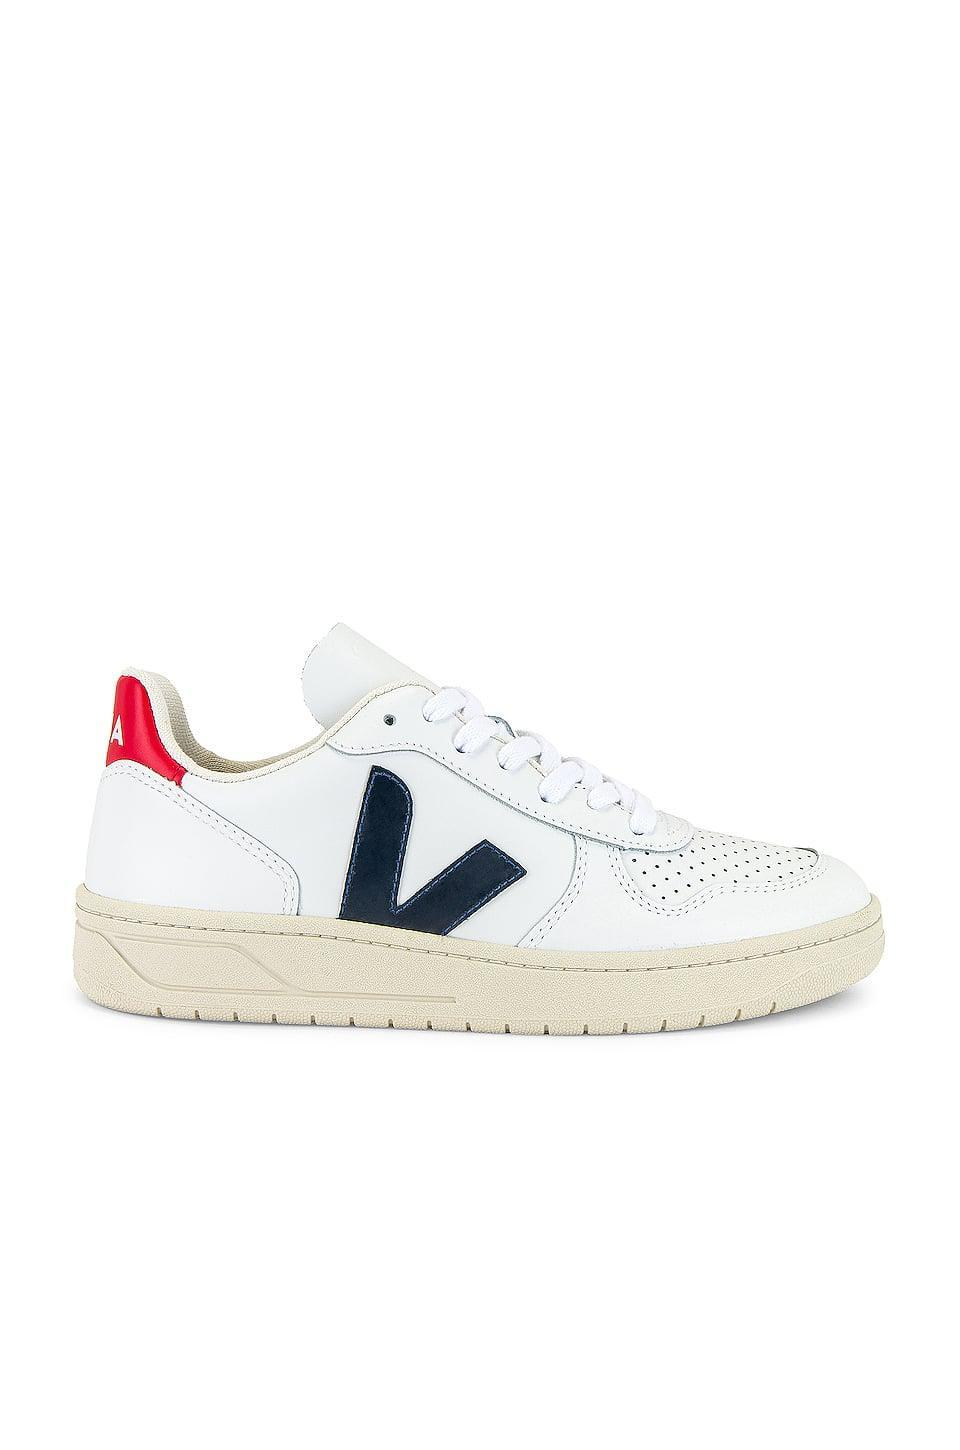 "<p>They'll be so excited to unwrap the <span>Veja V-10 Sneakers</span> ($150); they're a <a class=""link rapid-noclick-resp"" href=""https://www.popsugar.com/Meghan-Markle"" rel=""nofollow noopener"" target=""_blank"" data-ylk=""slk:Meghan Markle"">Meghan Markle</a> favorite.</p>"